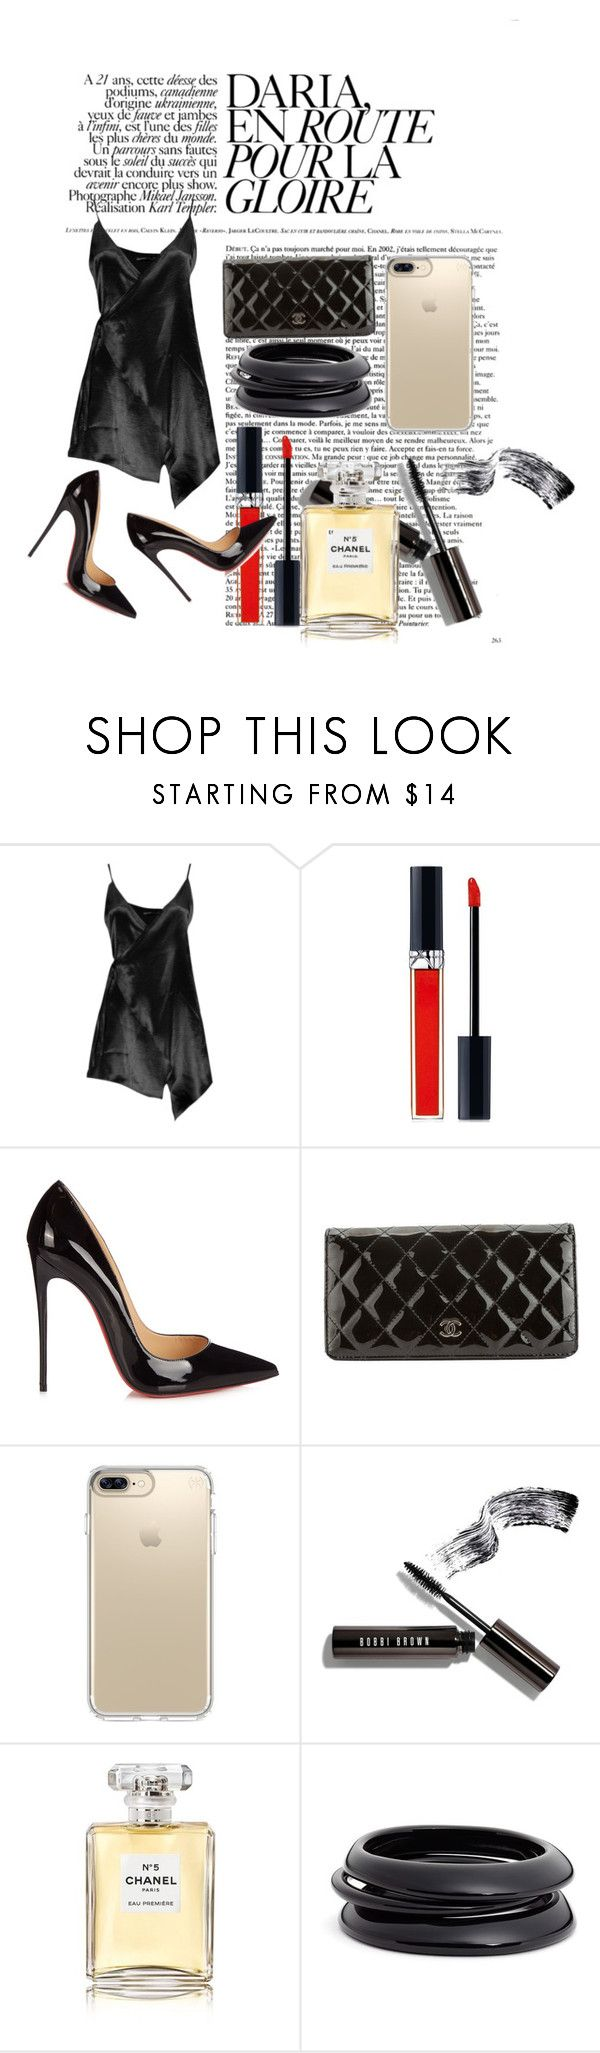 """""""In My Lil Black Dress"""" by veewers ❤ liked on Polyvore featuring Boohoo, Christian Dior, Christian Louboutin, Chanel, Speck, Bobbi Brown Cosmetics, ZENZii, men's fashion and menswear"""